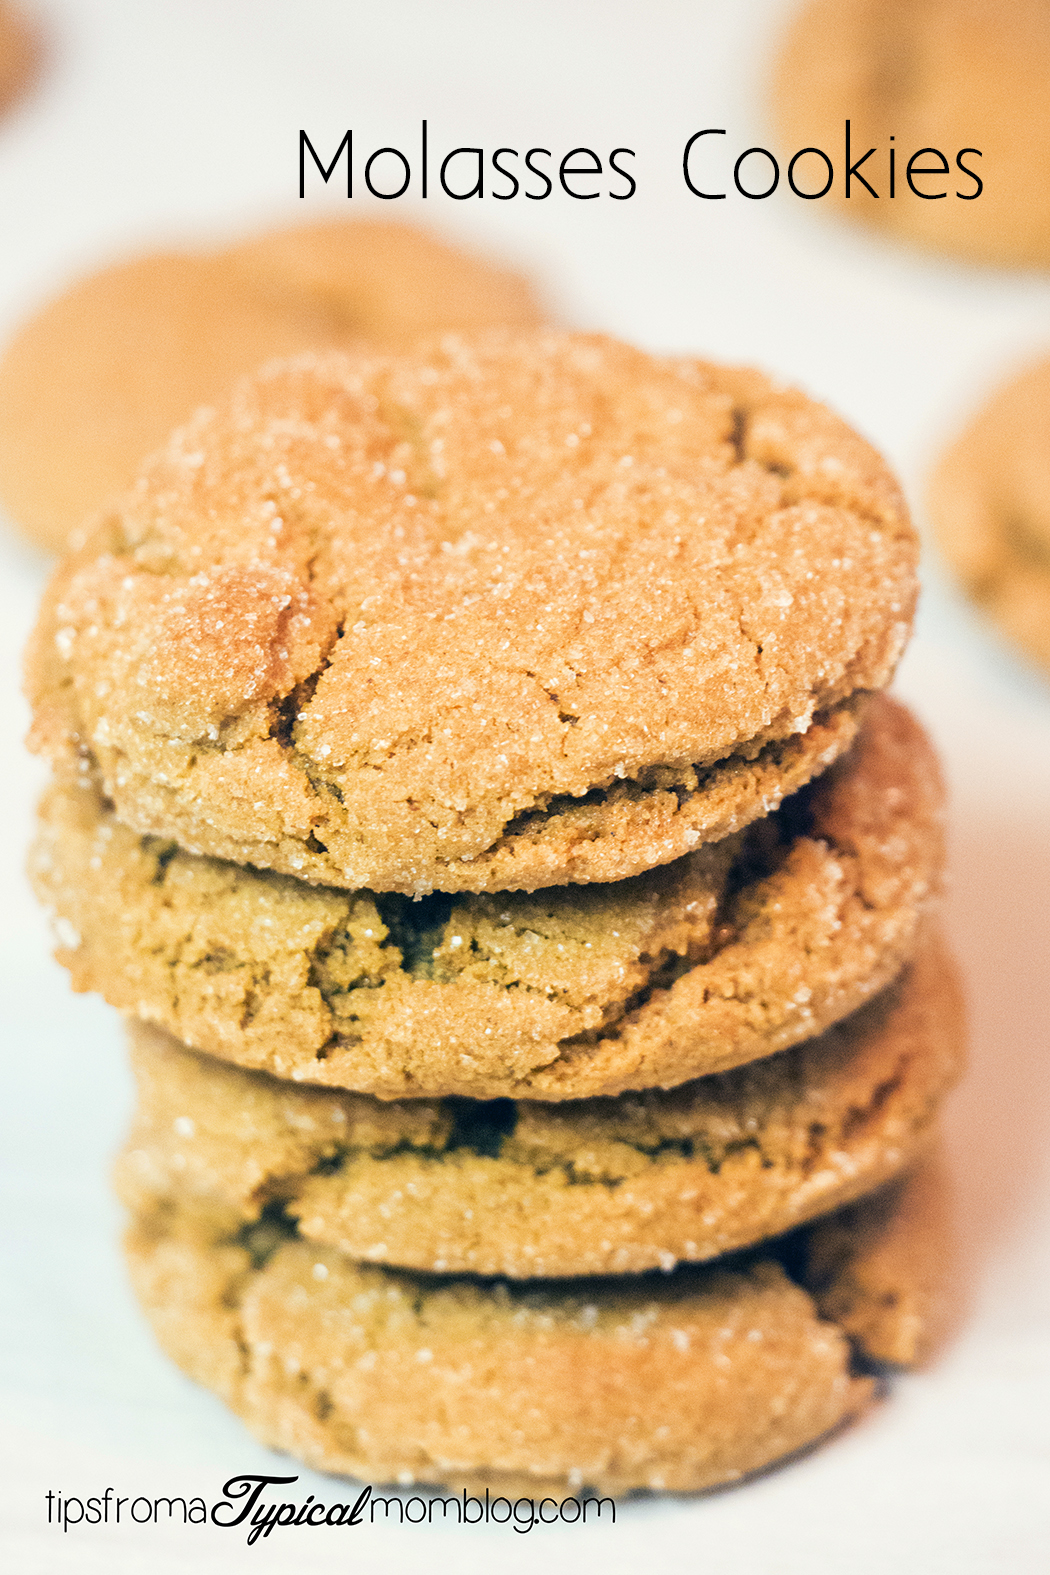 Soft and Chewy Molasses Cookies - Tips from a Typical Mom